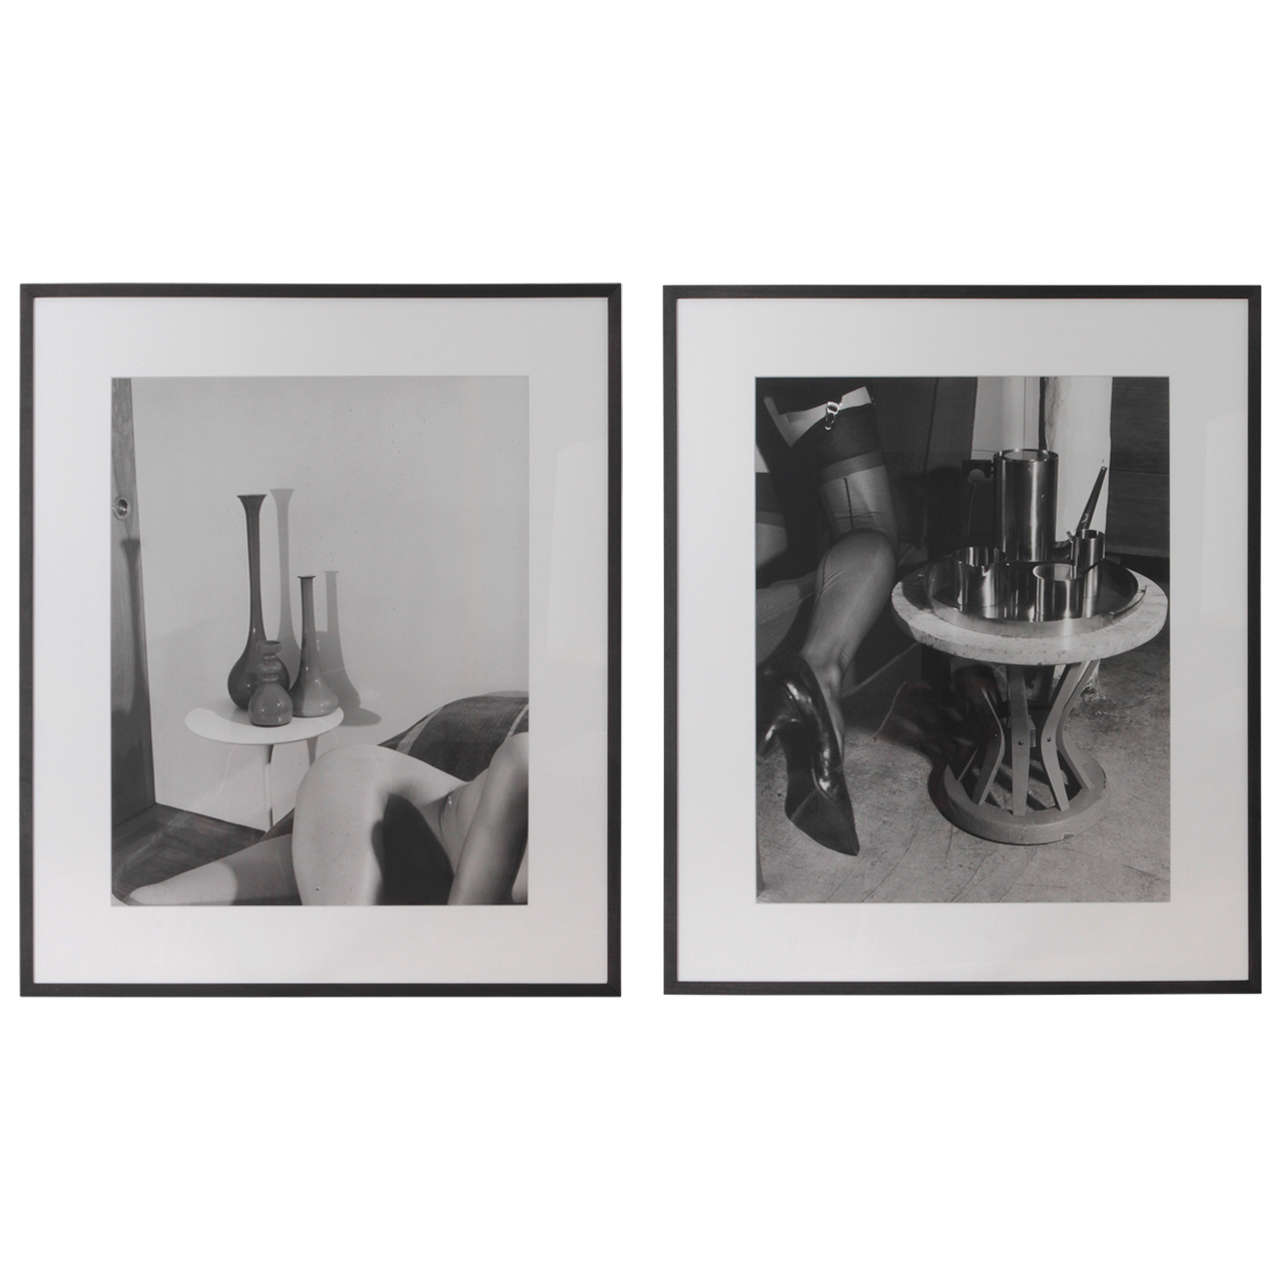 Black and White Silver Gelatin Prints by Stephen Rose